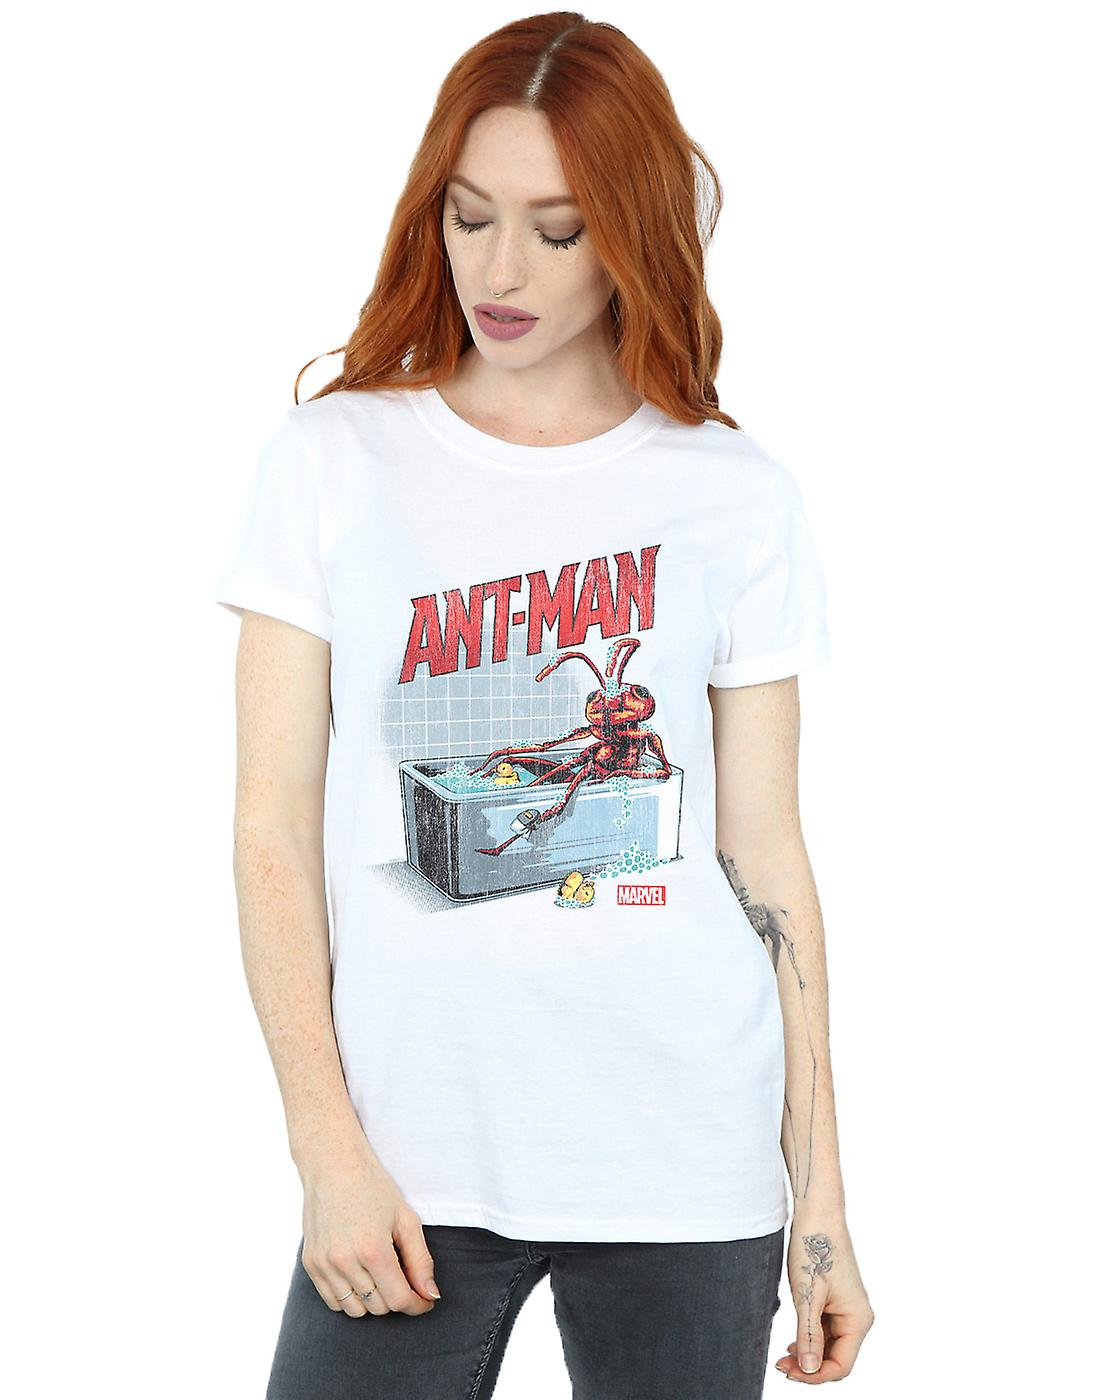 Marvel Women's Ant-Man And The Wasp Bathing Ant Boyfriend Fit T-Shirt